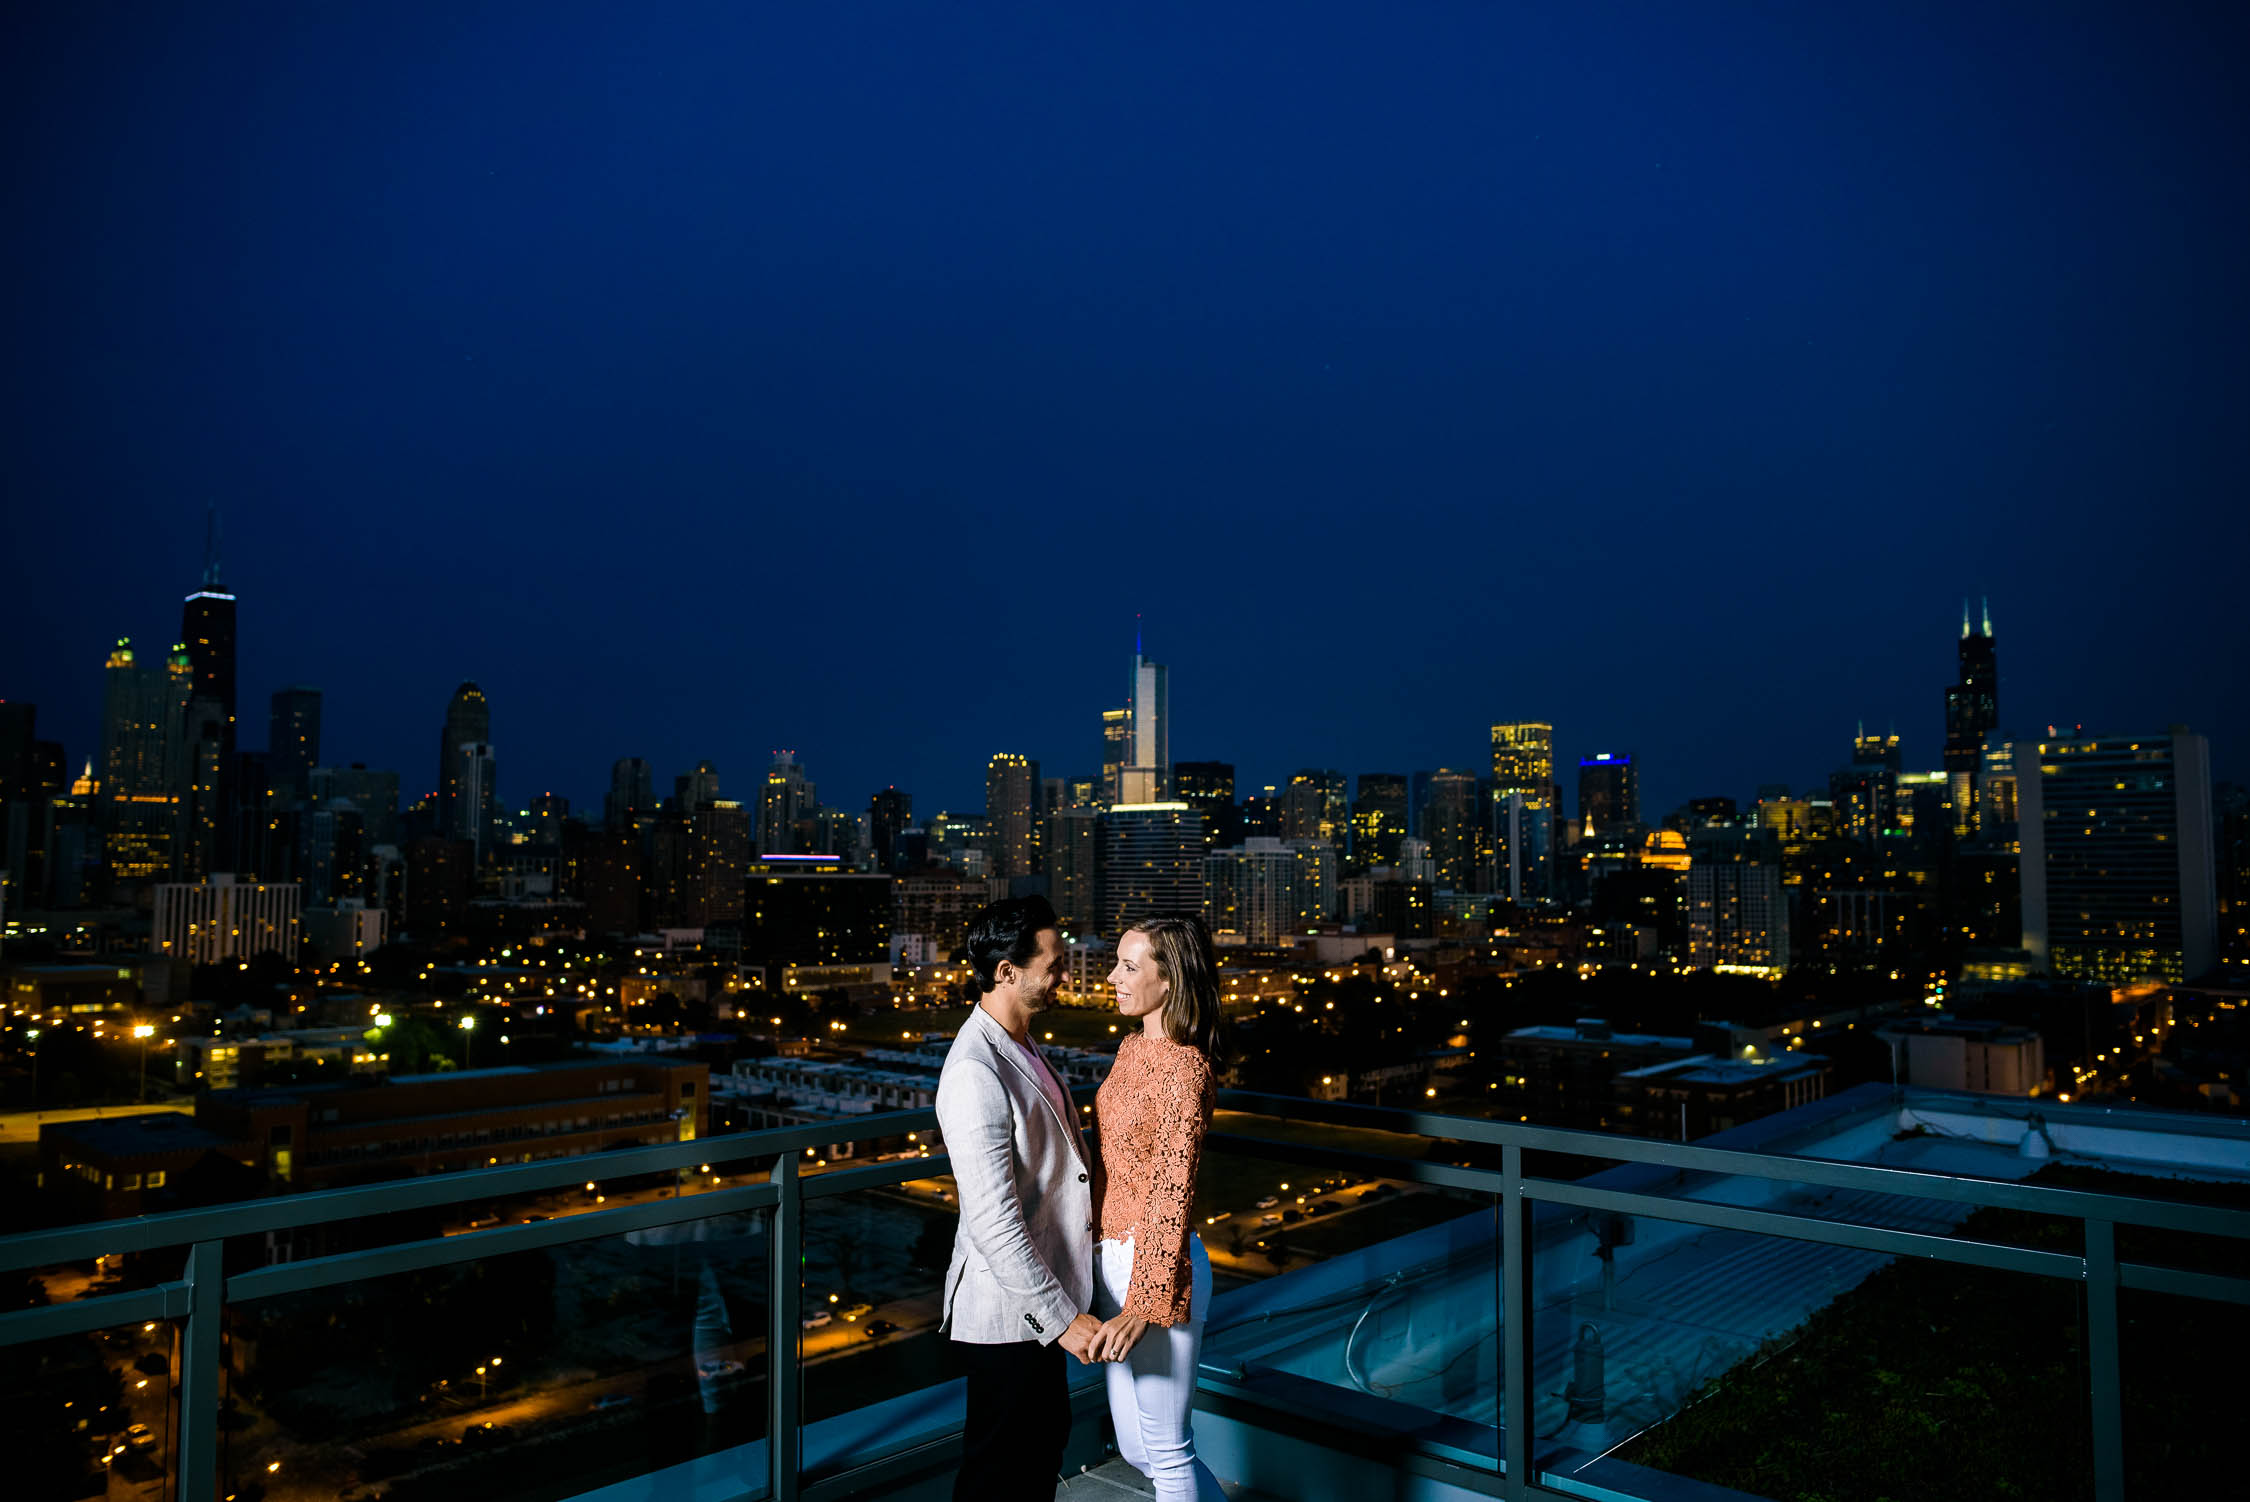 Engagement portrait at dusk with the Chicago Skyline.